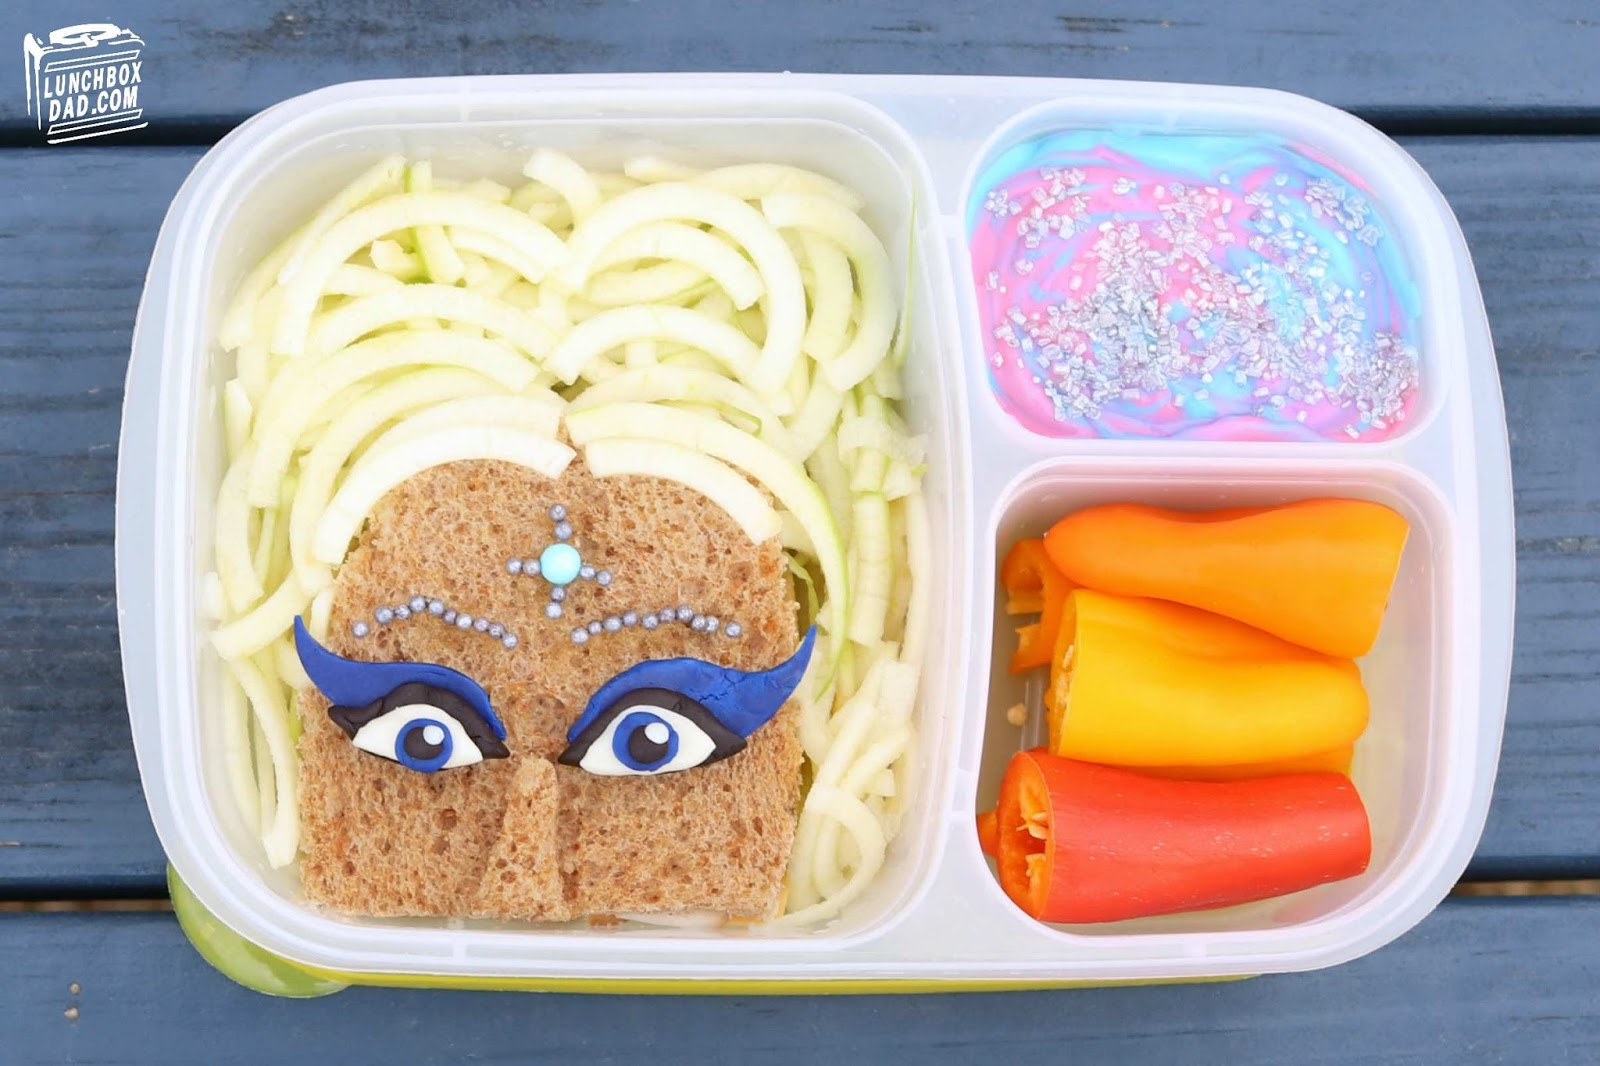 Lunchbox Dad A Wrinkle In Time Mrs Which Lunch